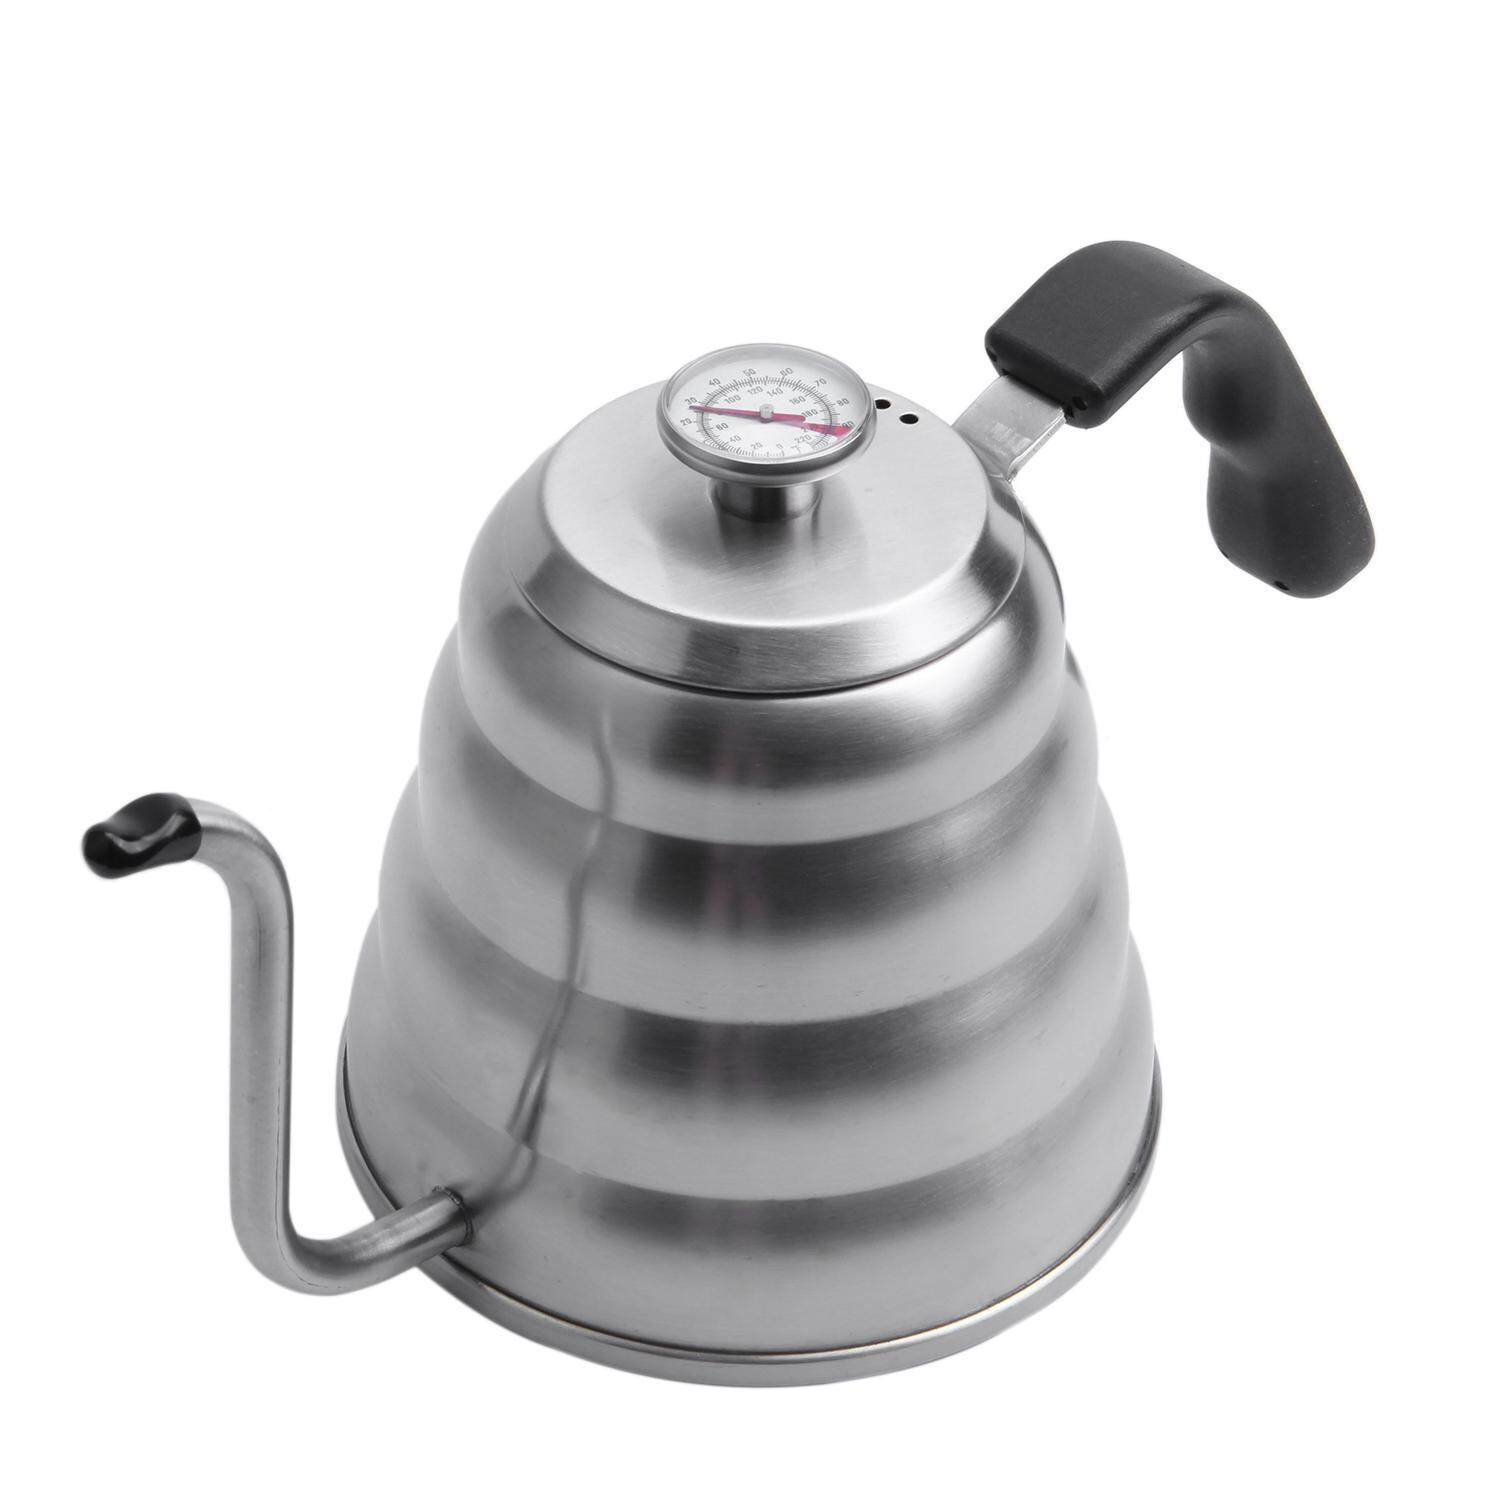 Free Shipping Premium Pour Over Coffee Kettle with for Precise Temperature 40floz - Gooseneck Tea Kettle